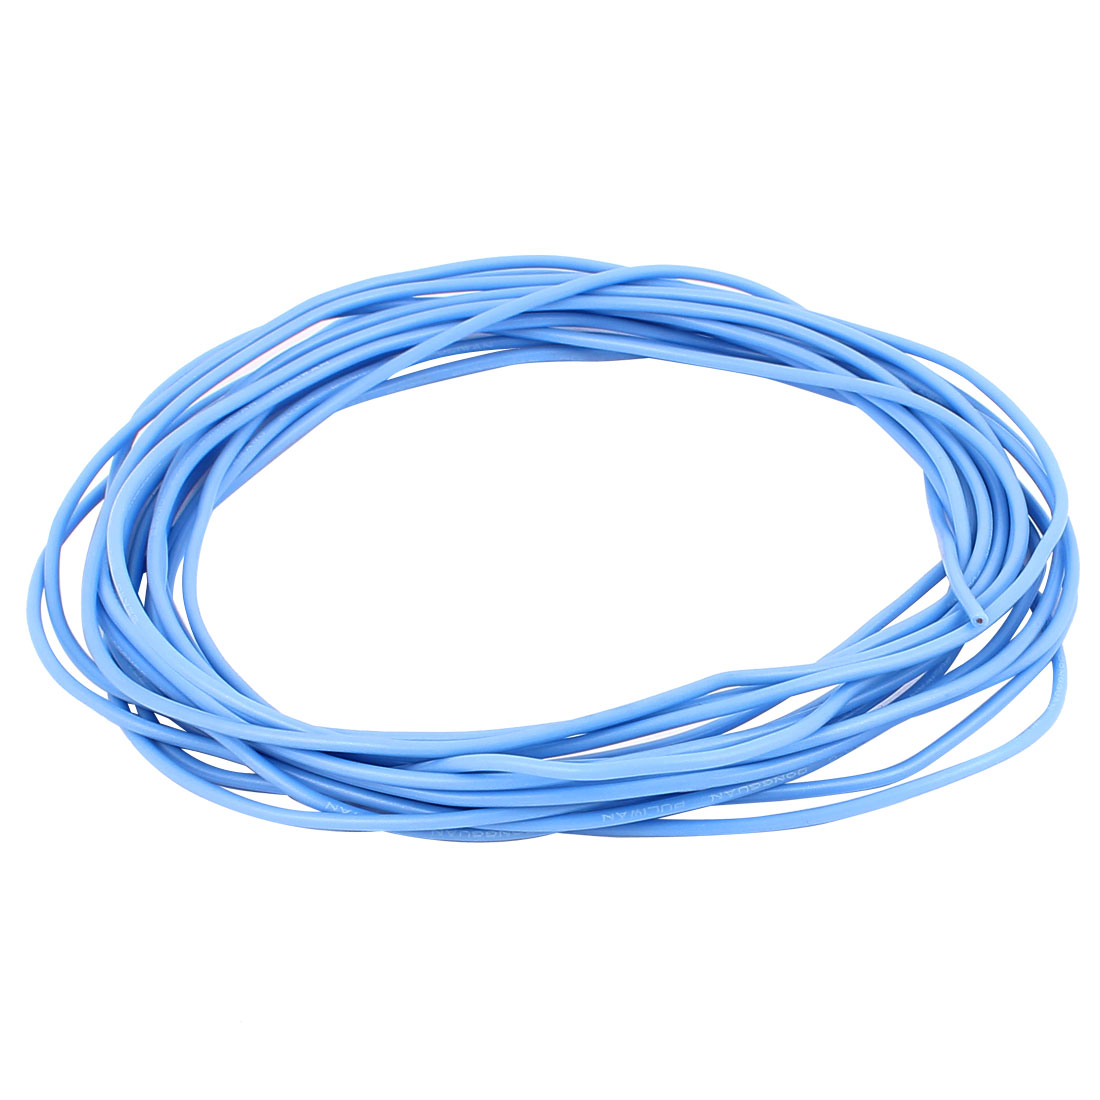 4.9M 16Ft 22AWG Electric Copper Core Flexible Silicone Wire Cable Blue